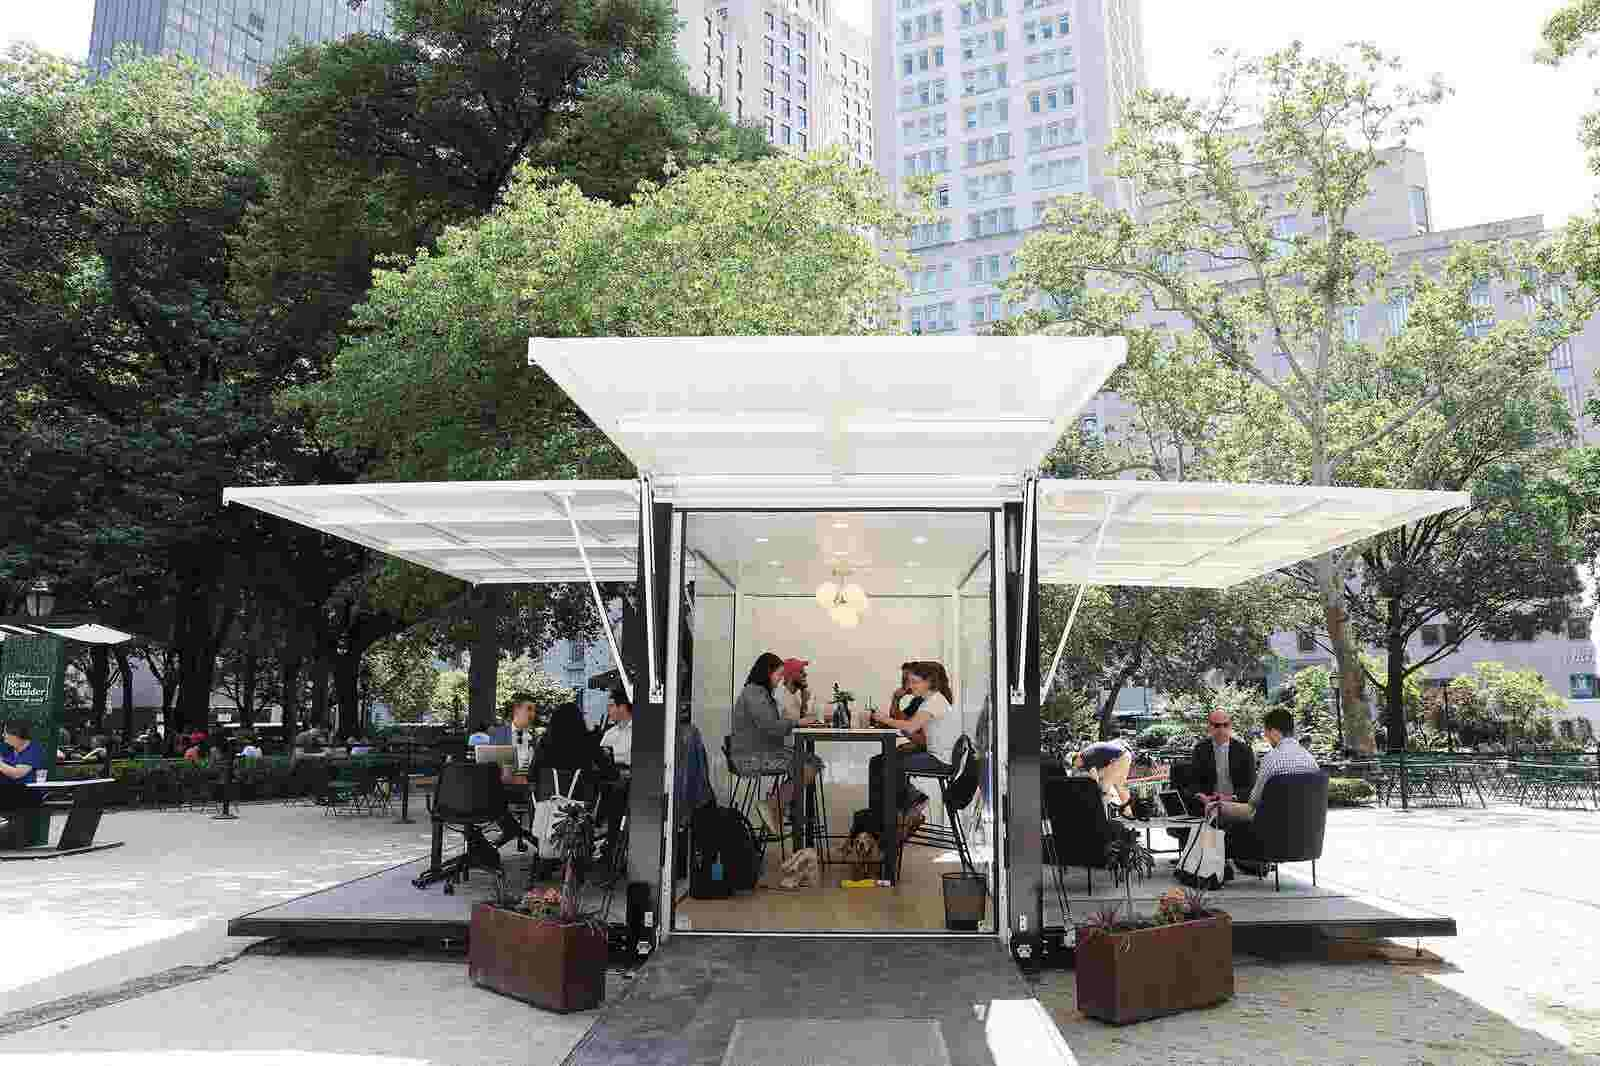 outdoors. Desk, Swivel Chair, Trees: Why Companies Are Moving The Office Outdoors